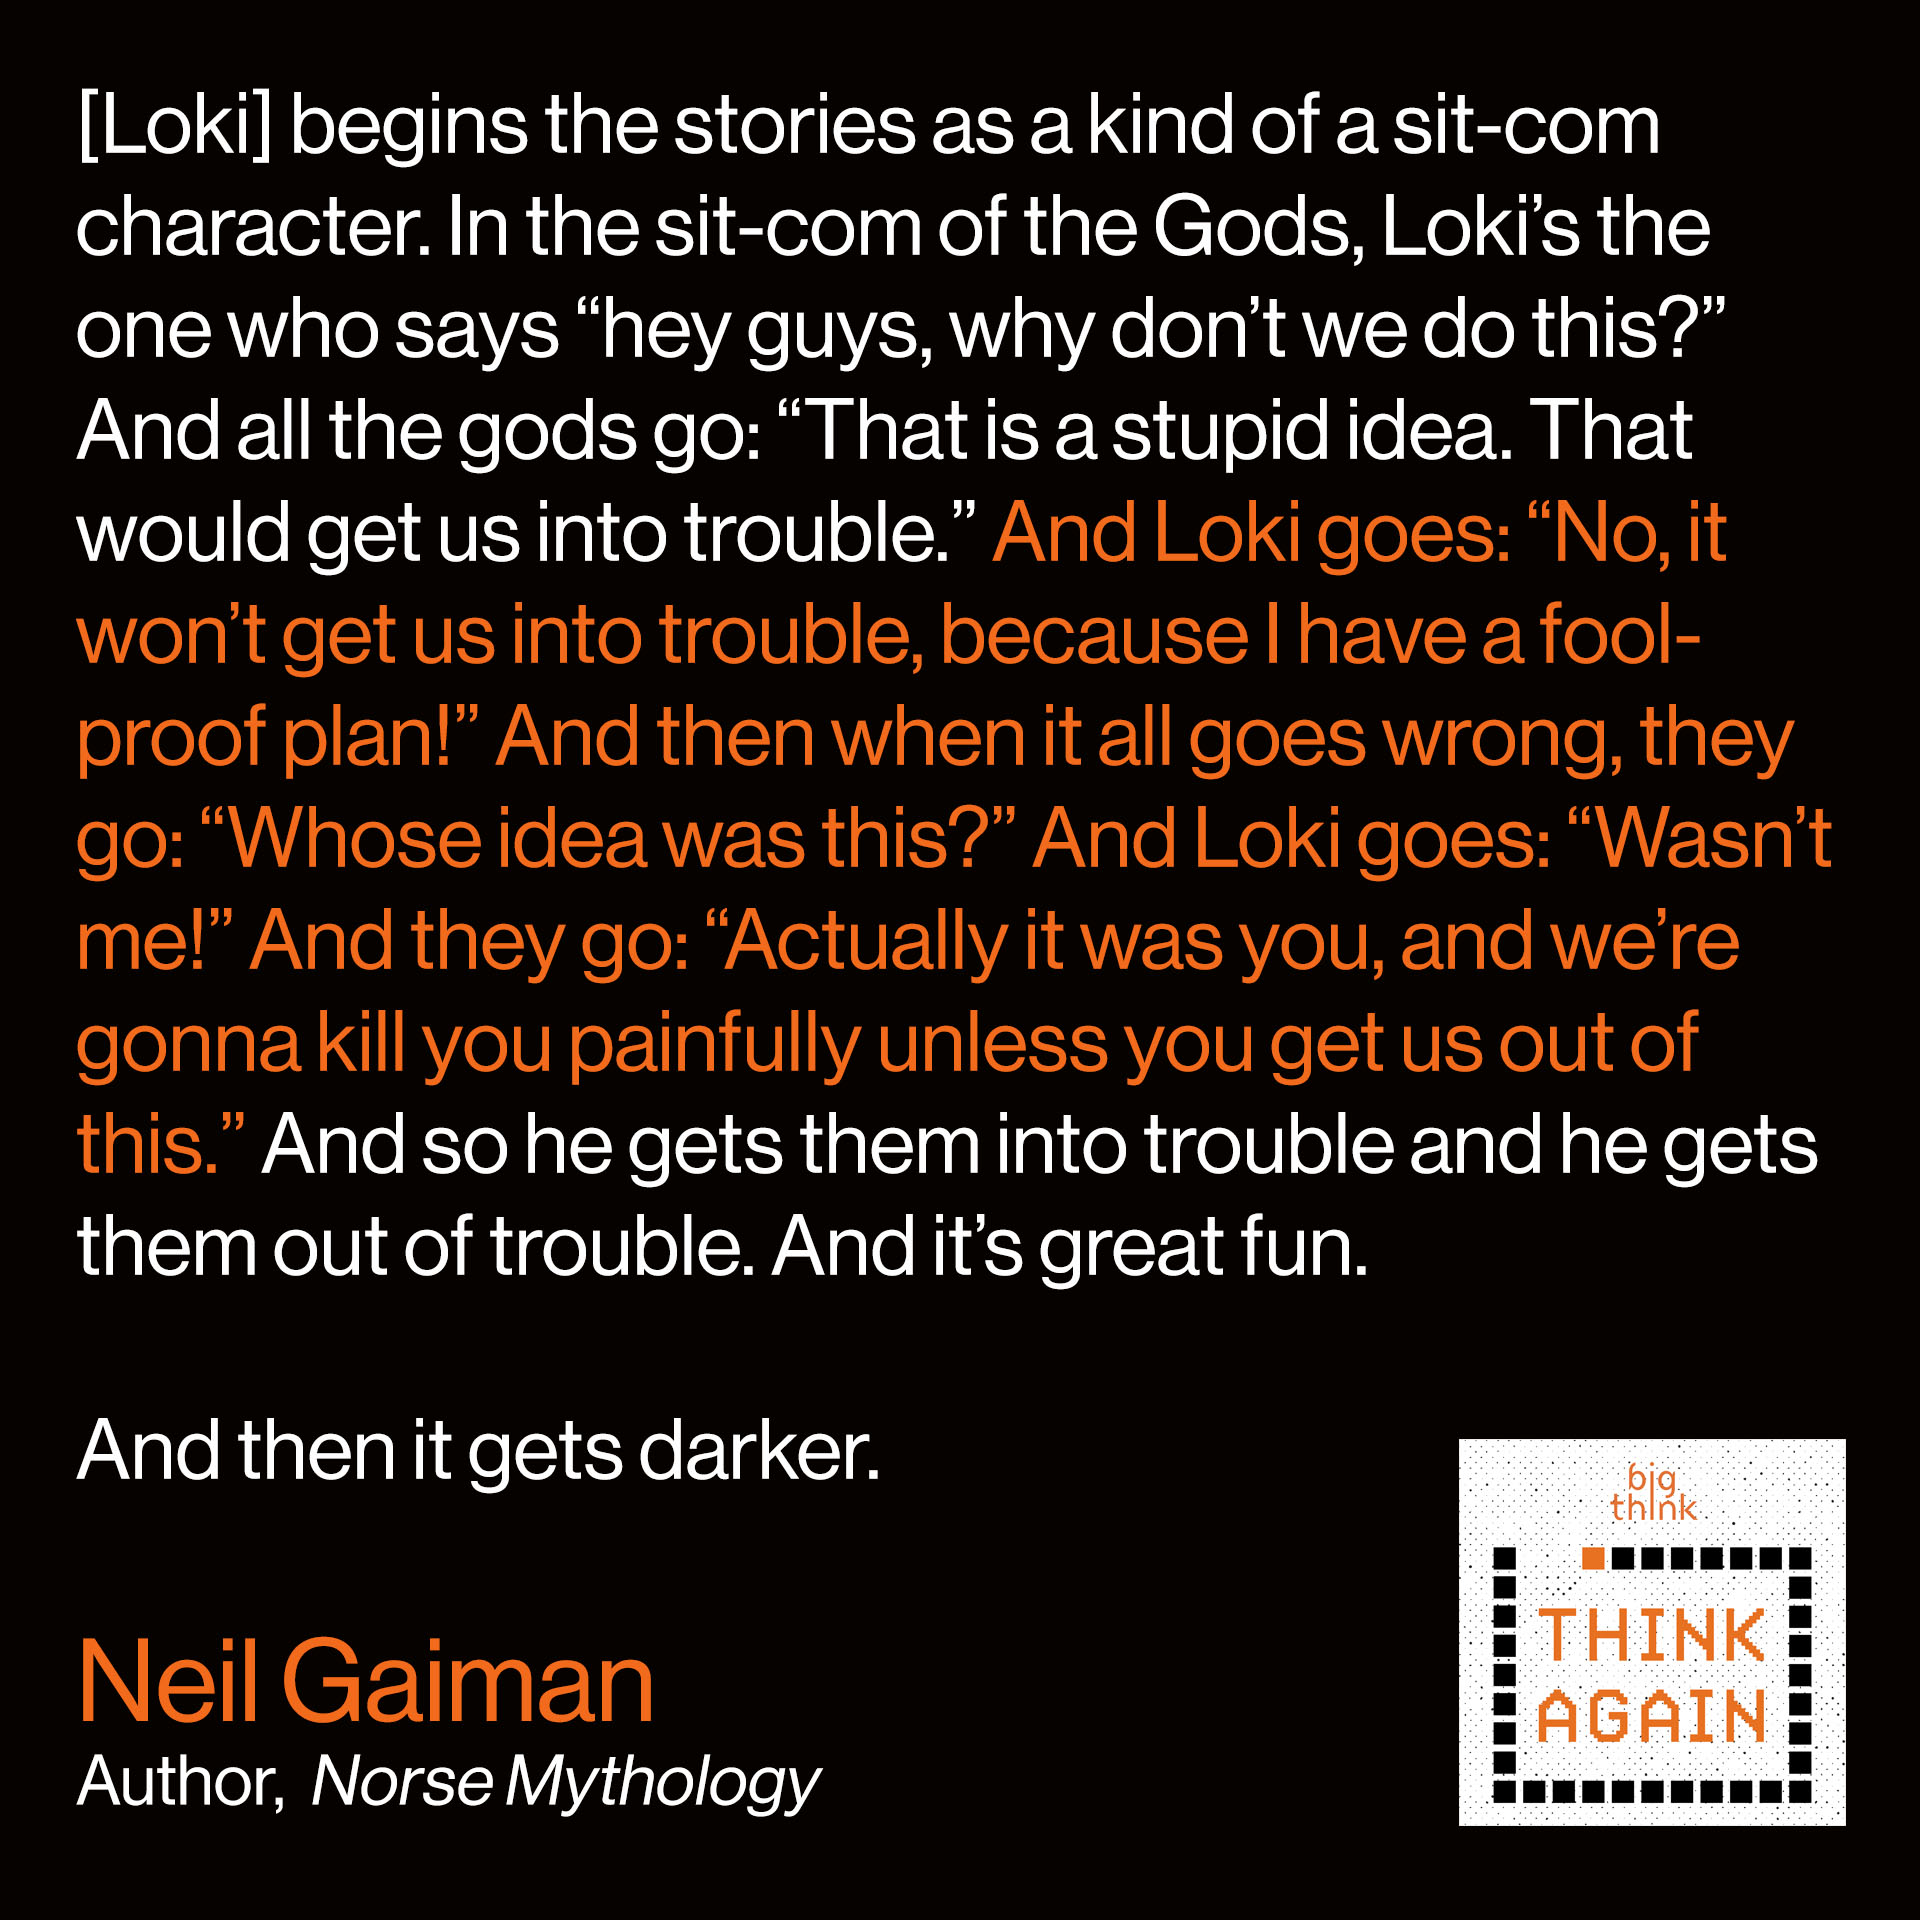 "Neil Gaiman Quote: [Loki] begins the [Norse myths] as a kind of a sit-com character. In the sit-com of the Gods, Loki's the one who says ""hey guys, why don't we do this?"" And all the gods go: ""That is a stupid idea. That would get us into trouble."" And Loki goes: ""No, it won't get us into trouble, because I have a foolproof plan!"" And then when it all goes wrong, they go: ""Whose idea was this?"" And Loki goes: ""Wasn't me!"" And they go: ""Actually it was you, and we're gonna kill you painfully unless you get us out of this."" And so he gets them into trouble and he gets them out of trouble. And it's great fun. And then it gets darker."